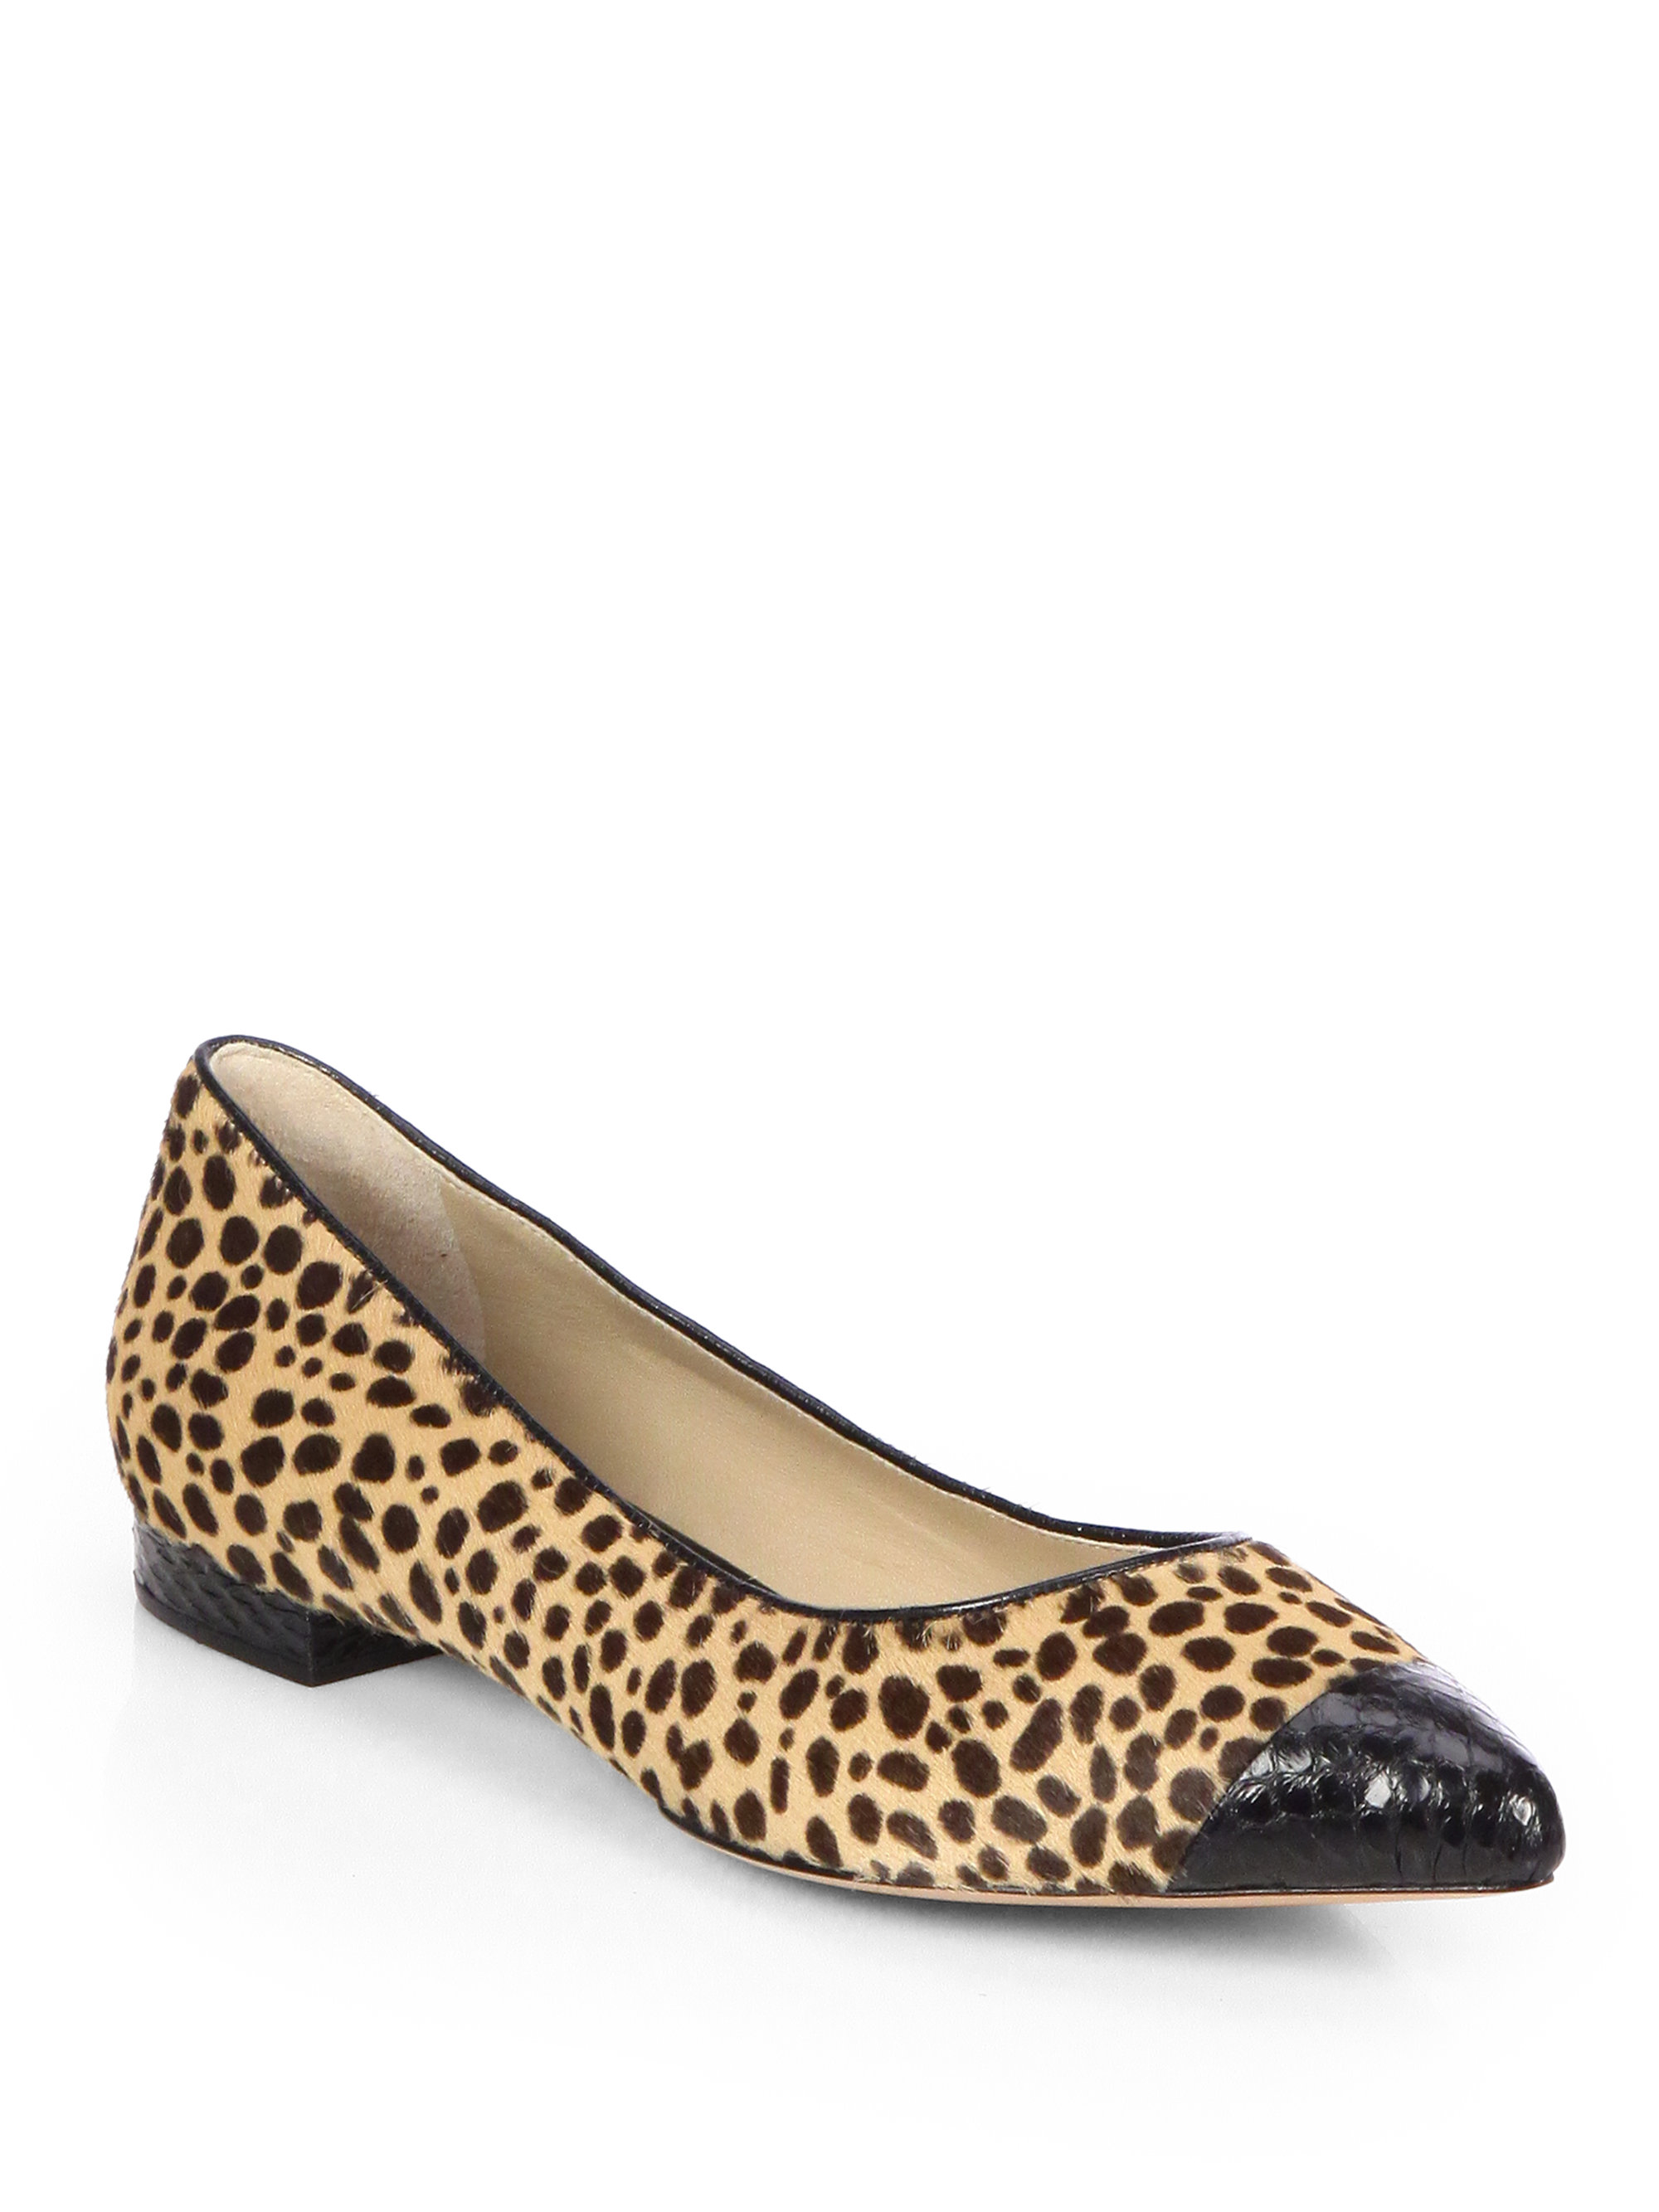 Get free shipping on ballet flats, lace up ankle flats & women's designer flats from Tory's new collection. Find the new looks online at napalmclan.tk